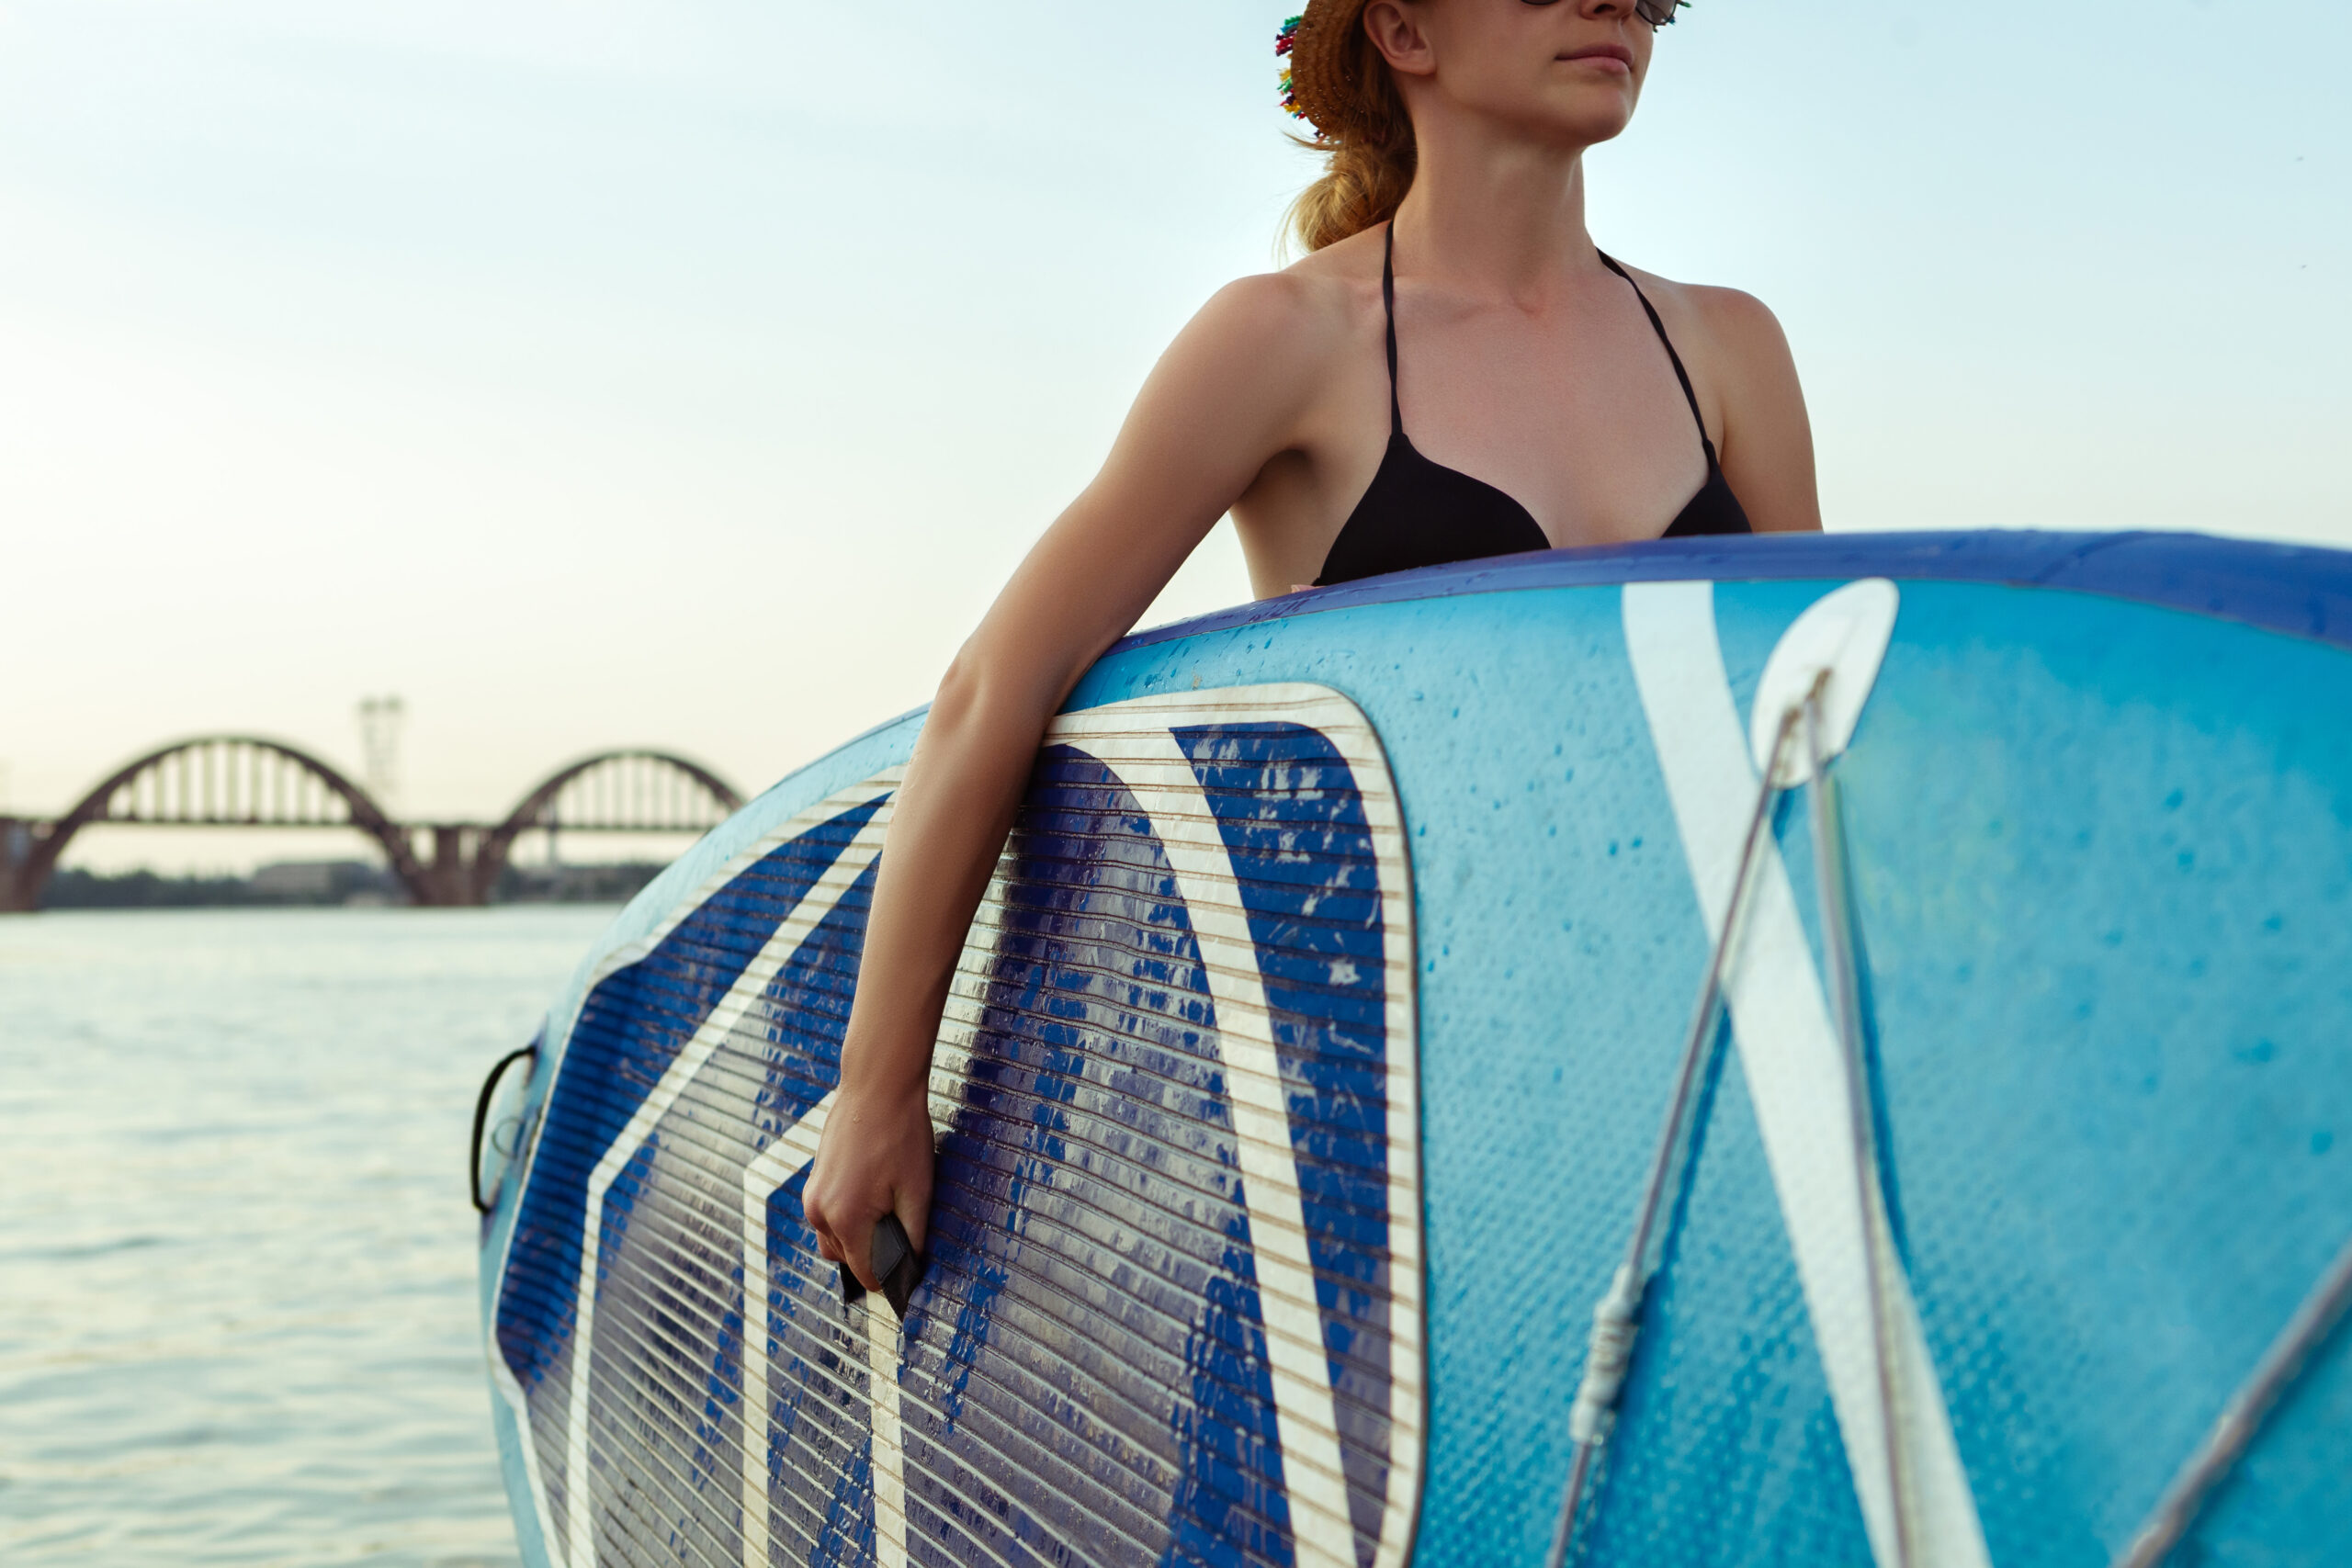 young-attractive-woman-sitting-on-paddle-board-1-scaled.jpg